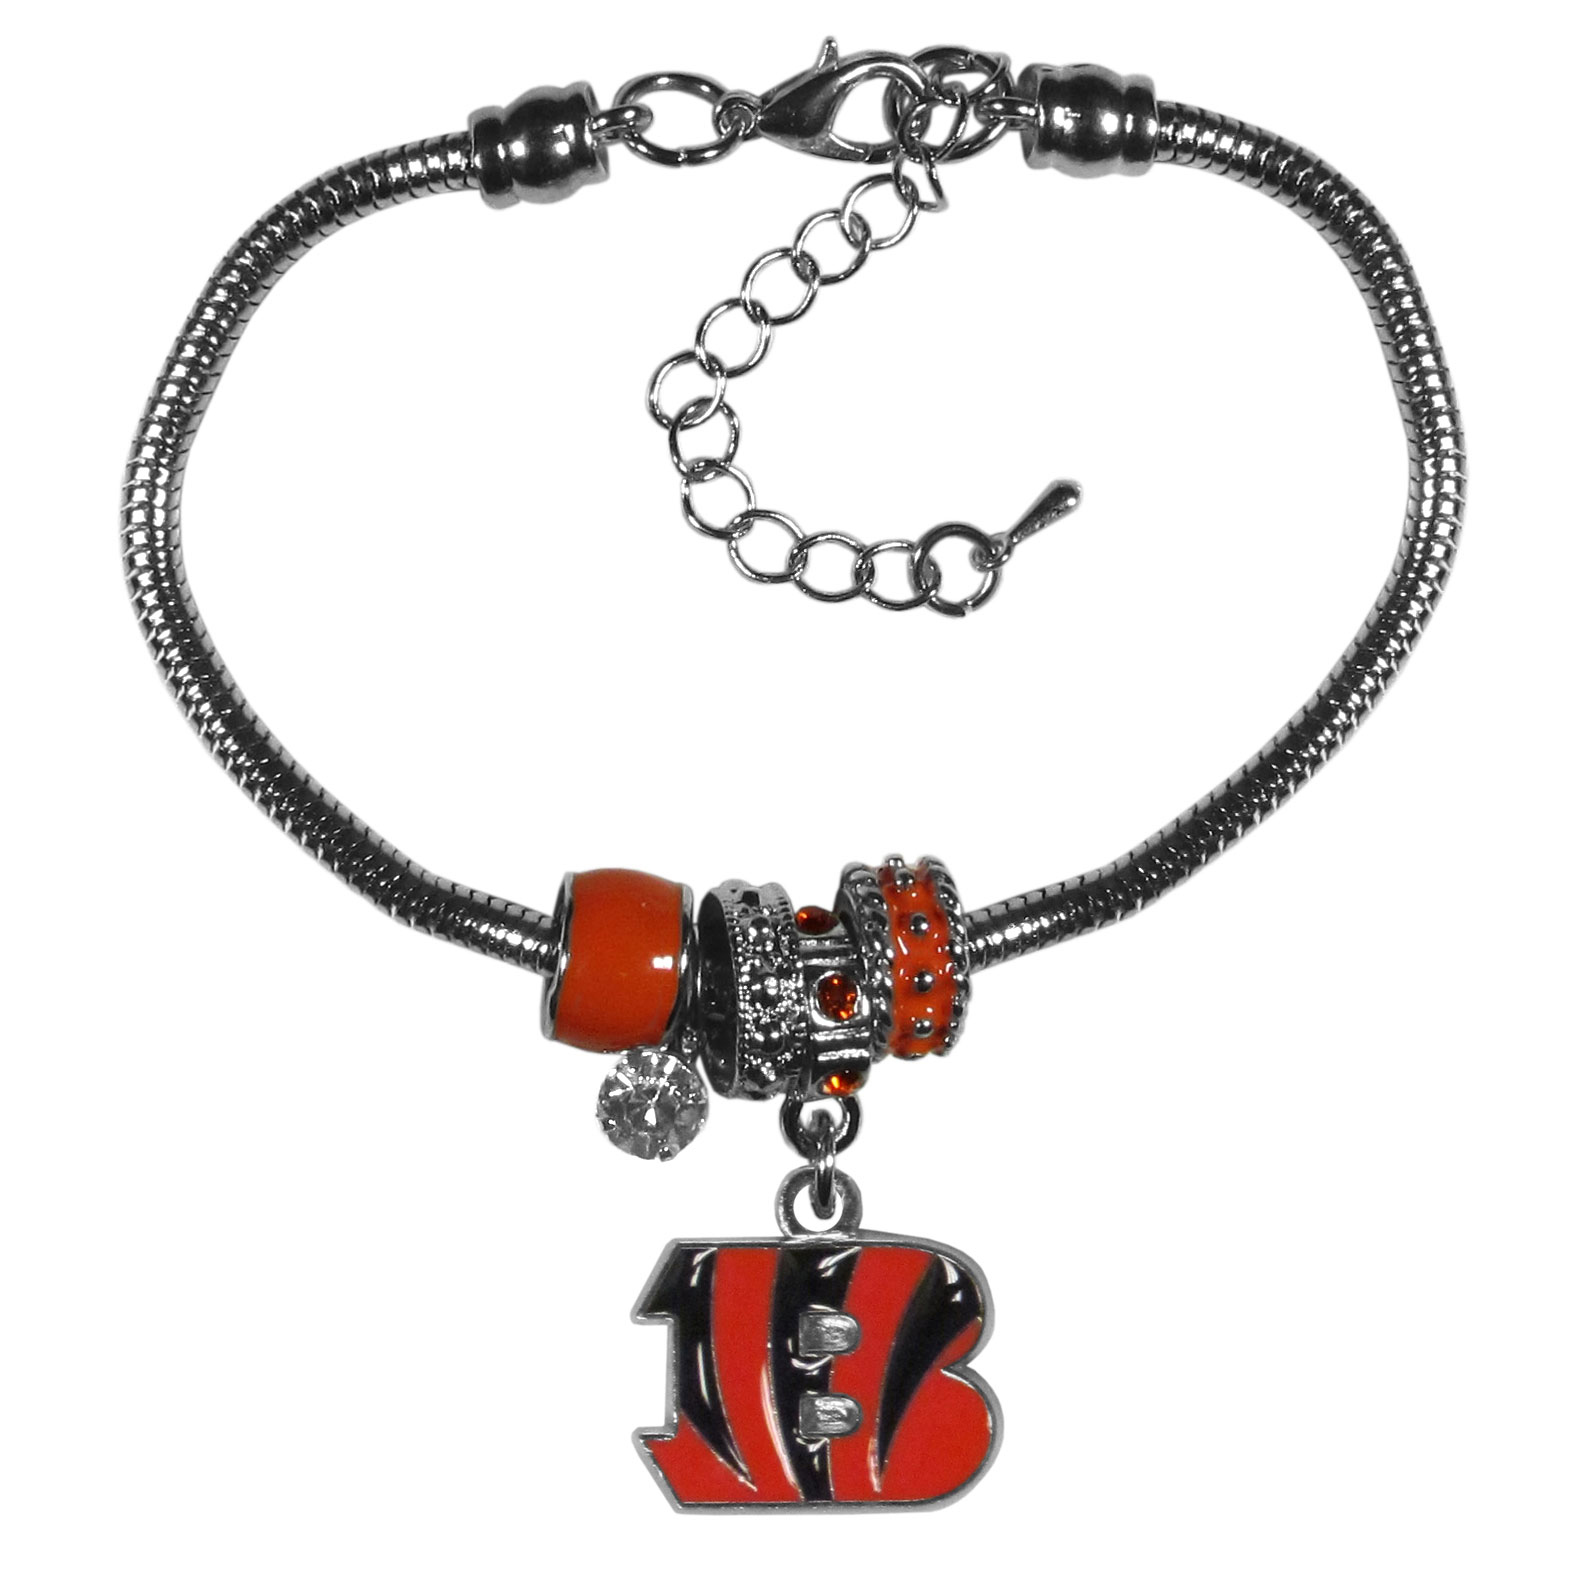 Cincinnati Bengals Euro Bead Bracelet - This must-have bracelet is fashioned with the trendy euro style beads and an eye catching team charm to create a designer inspired Cincinnati Bengals bead bracelet. This is a true statement piece with 4 euro beads, a rhinestone accent and stylish team charm beaded onto a 7.5 inch snake chain with a 2 inch extender for an adjustable fit. This contemporary look is perfect for game day but chic enough for everyday.